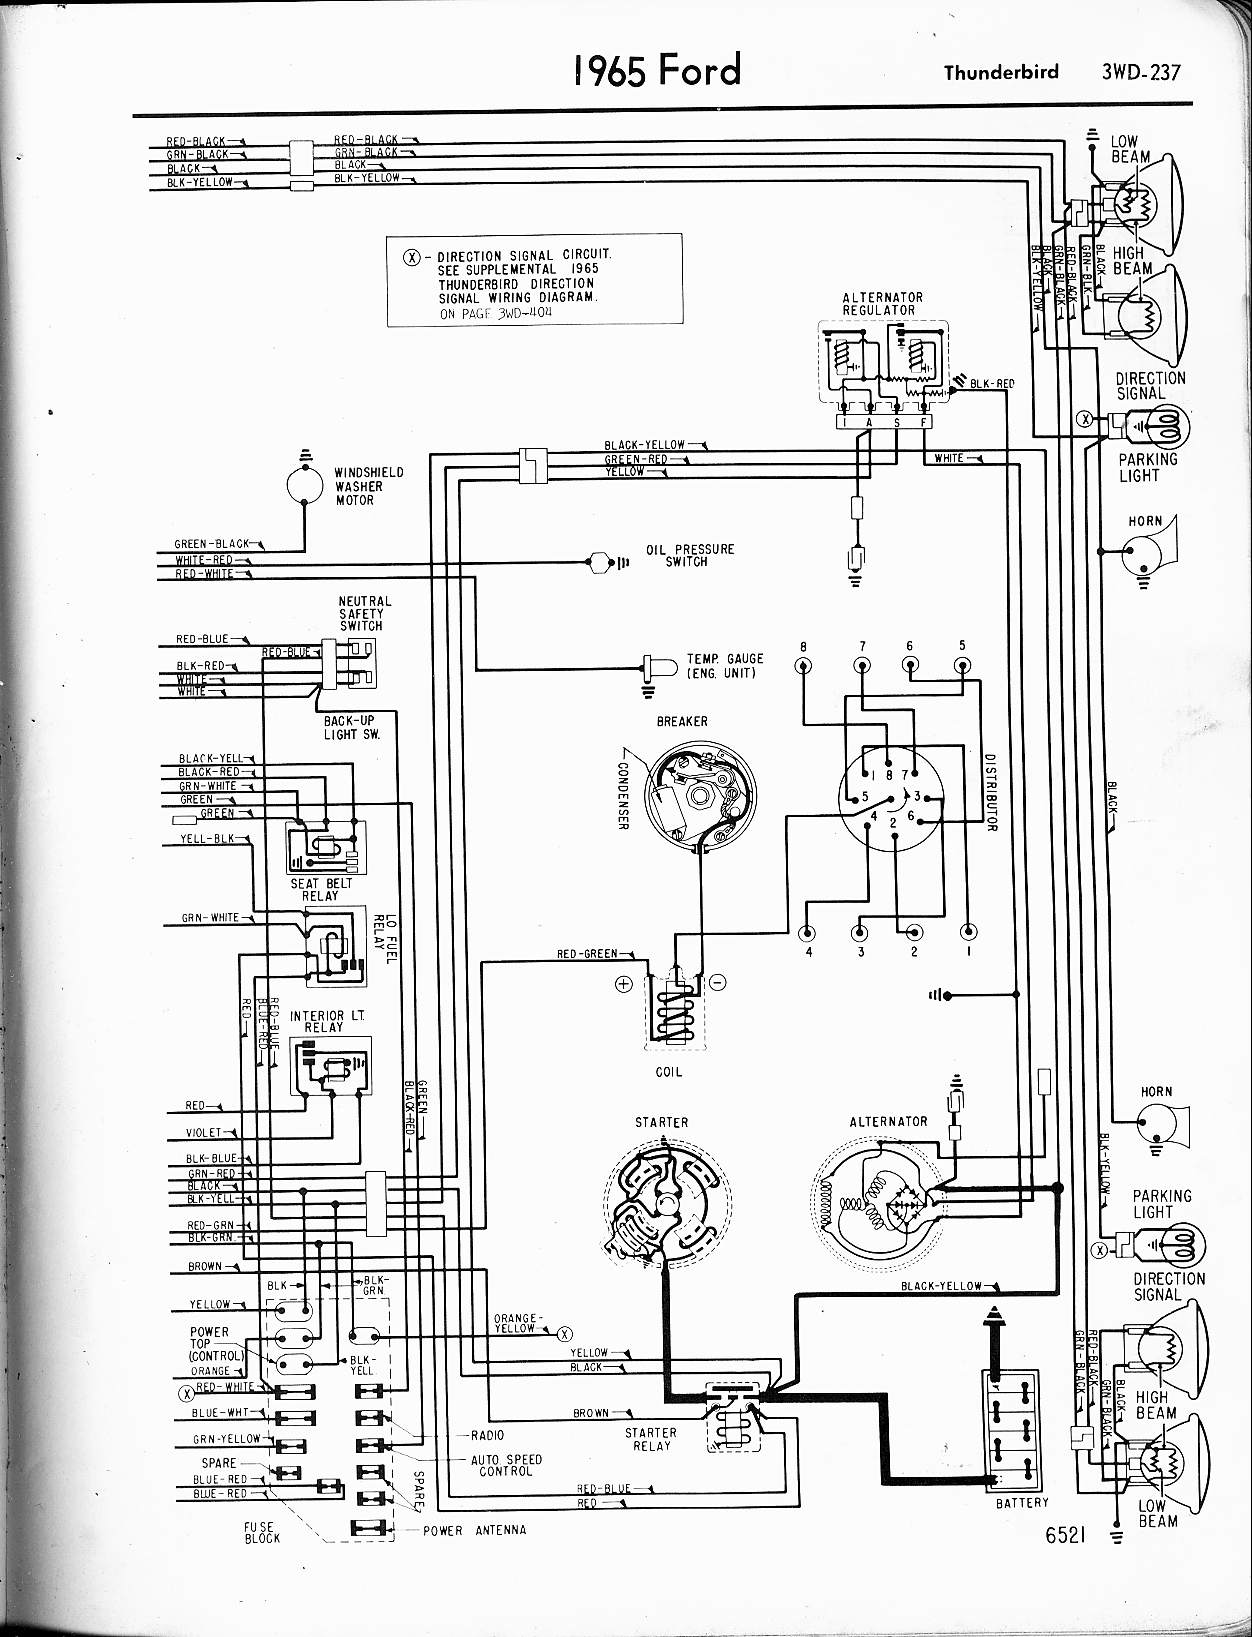 57 65 ford wiring diagrams rh oldcarmanualproject com 1964 Thunderbird Radio Wiring Diagram 1965 Thunderbird Vacuum Diagrams